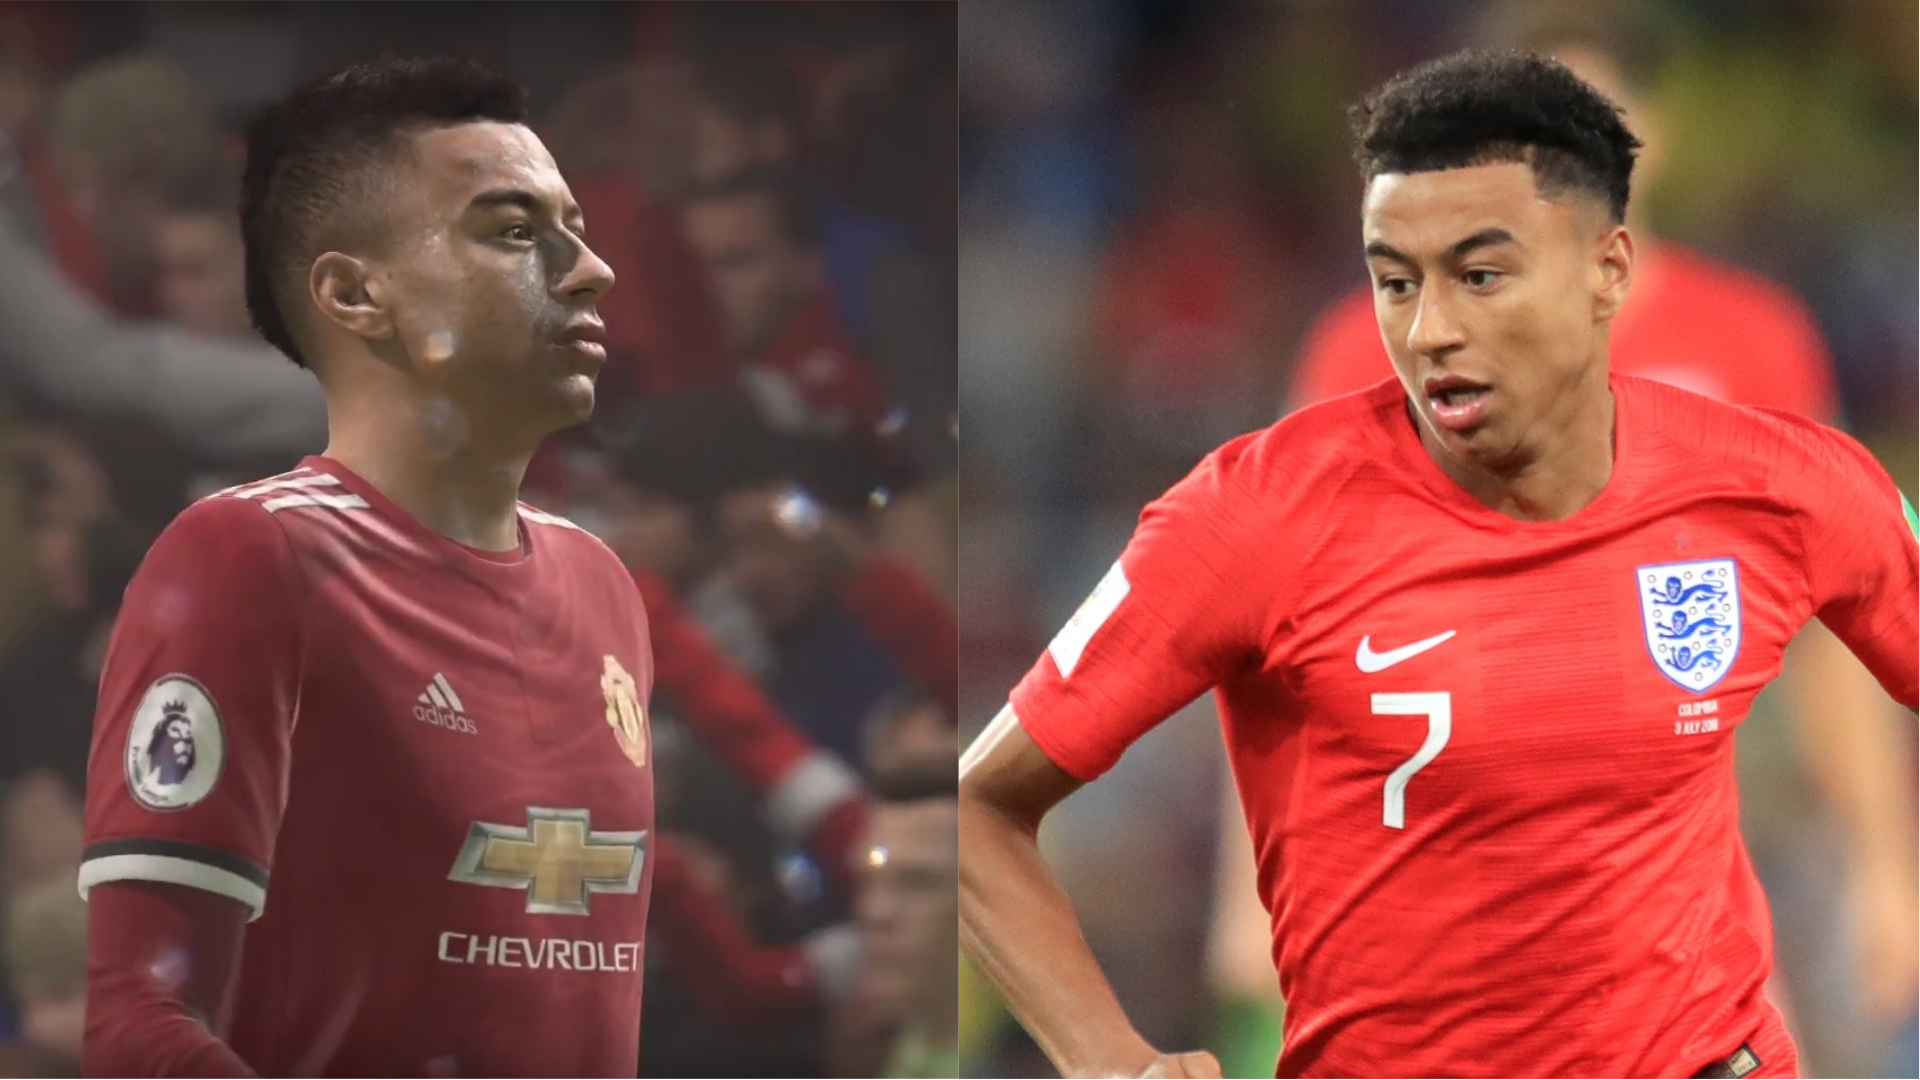 Manchester United midfielder Jesse Lingard on Fifa 18 and in real life